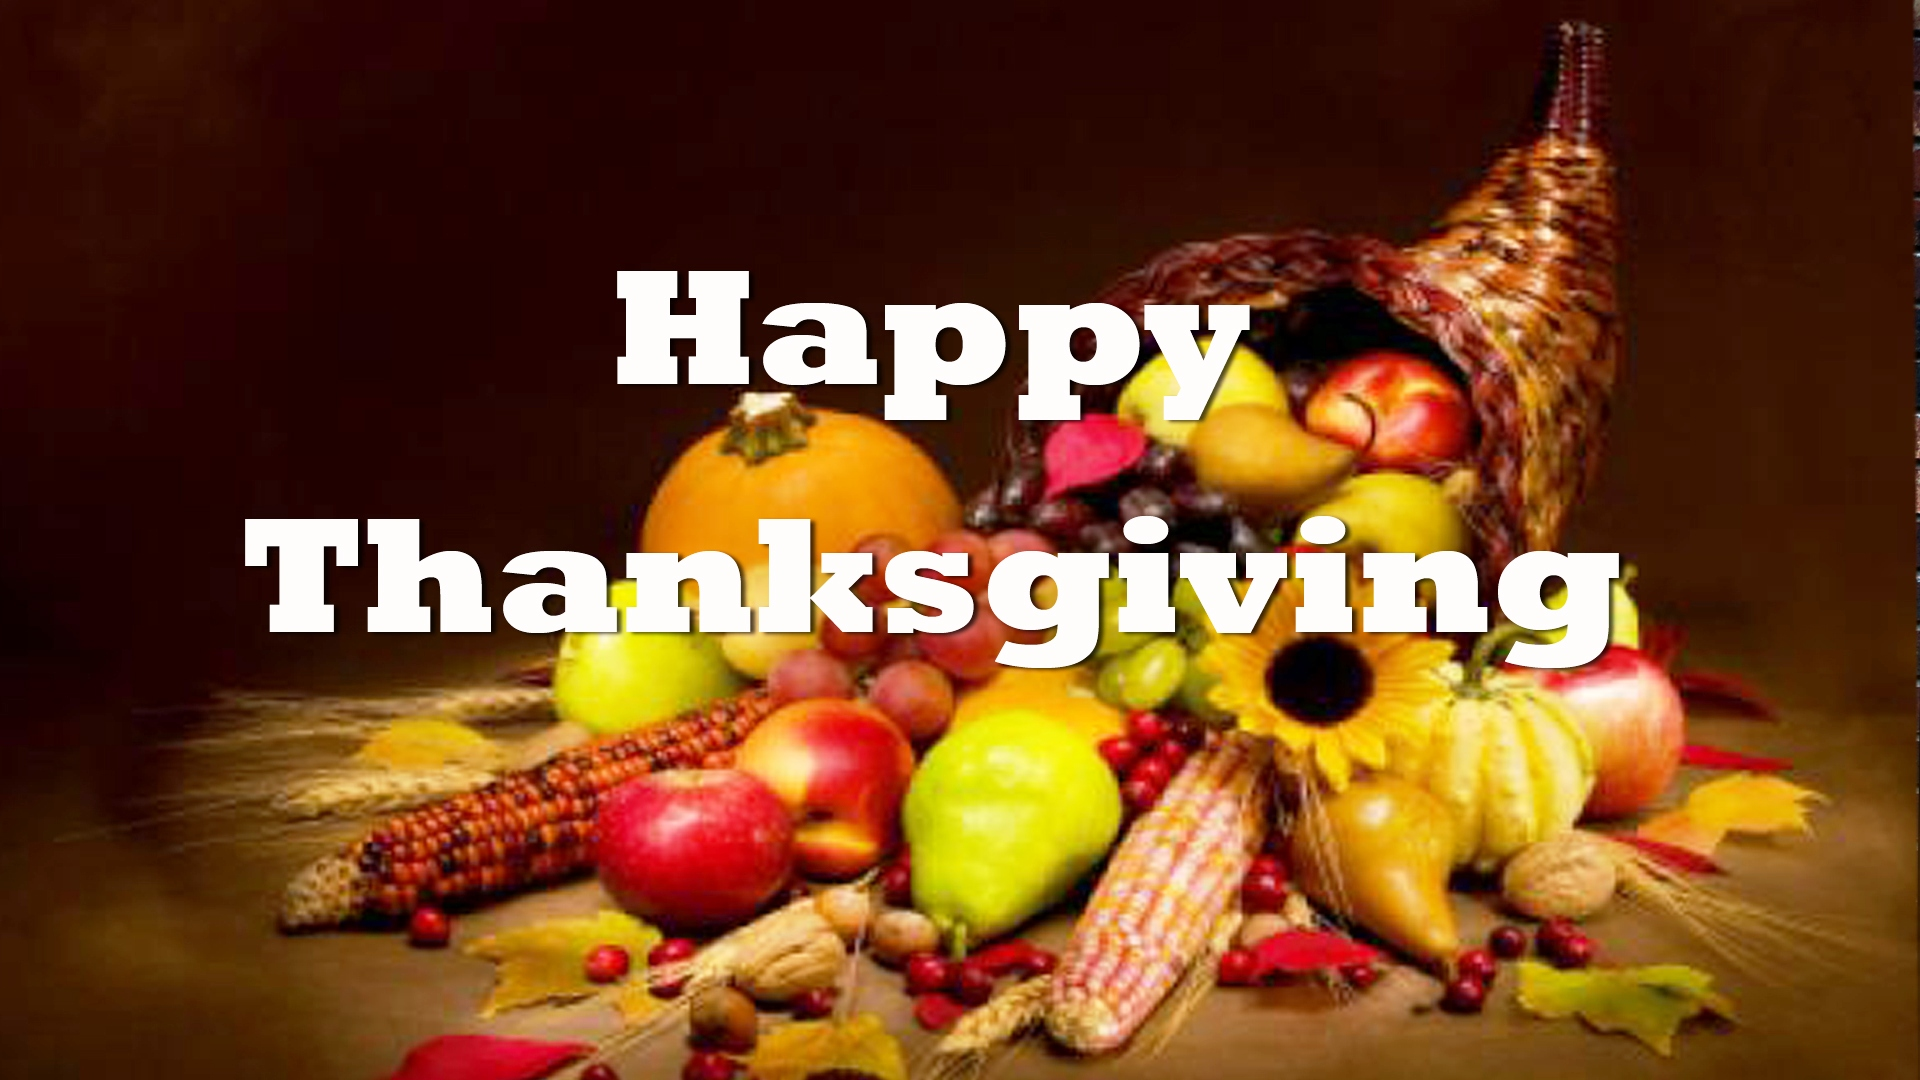 UBO wishes for you and yours a Happy Thanksgiving Day